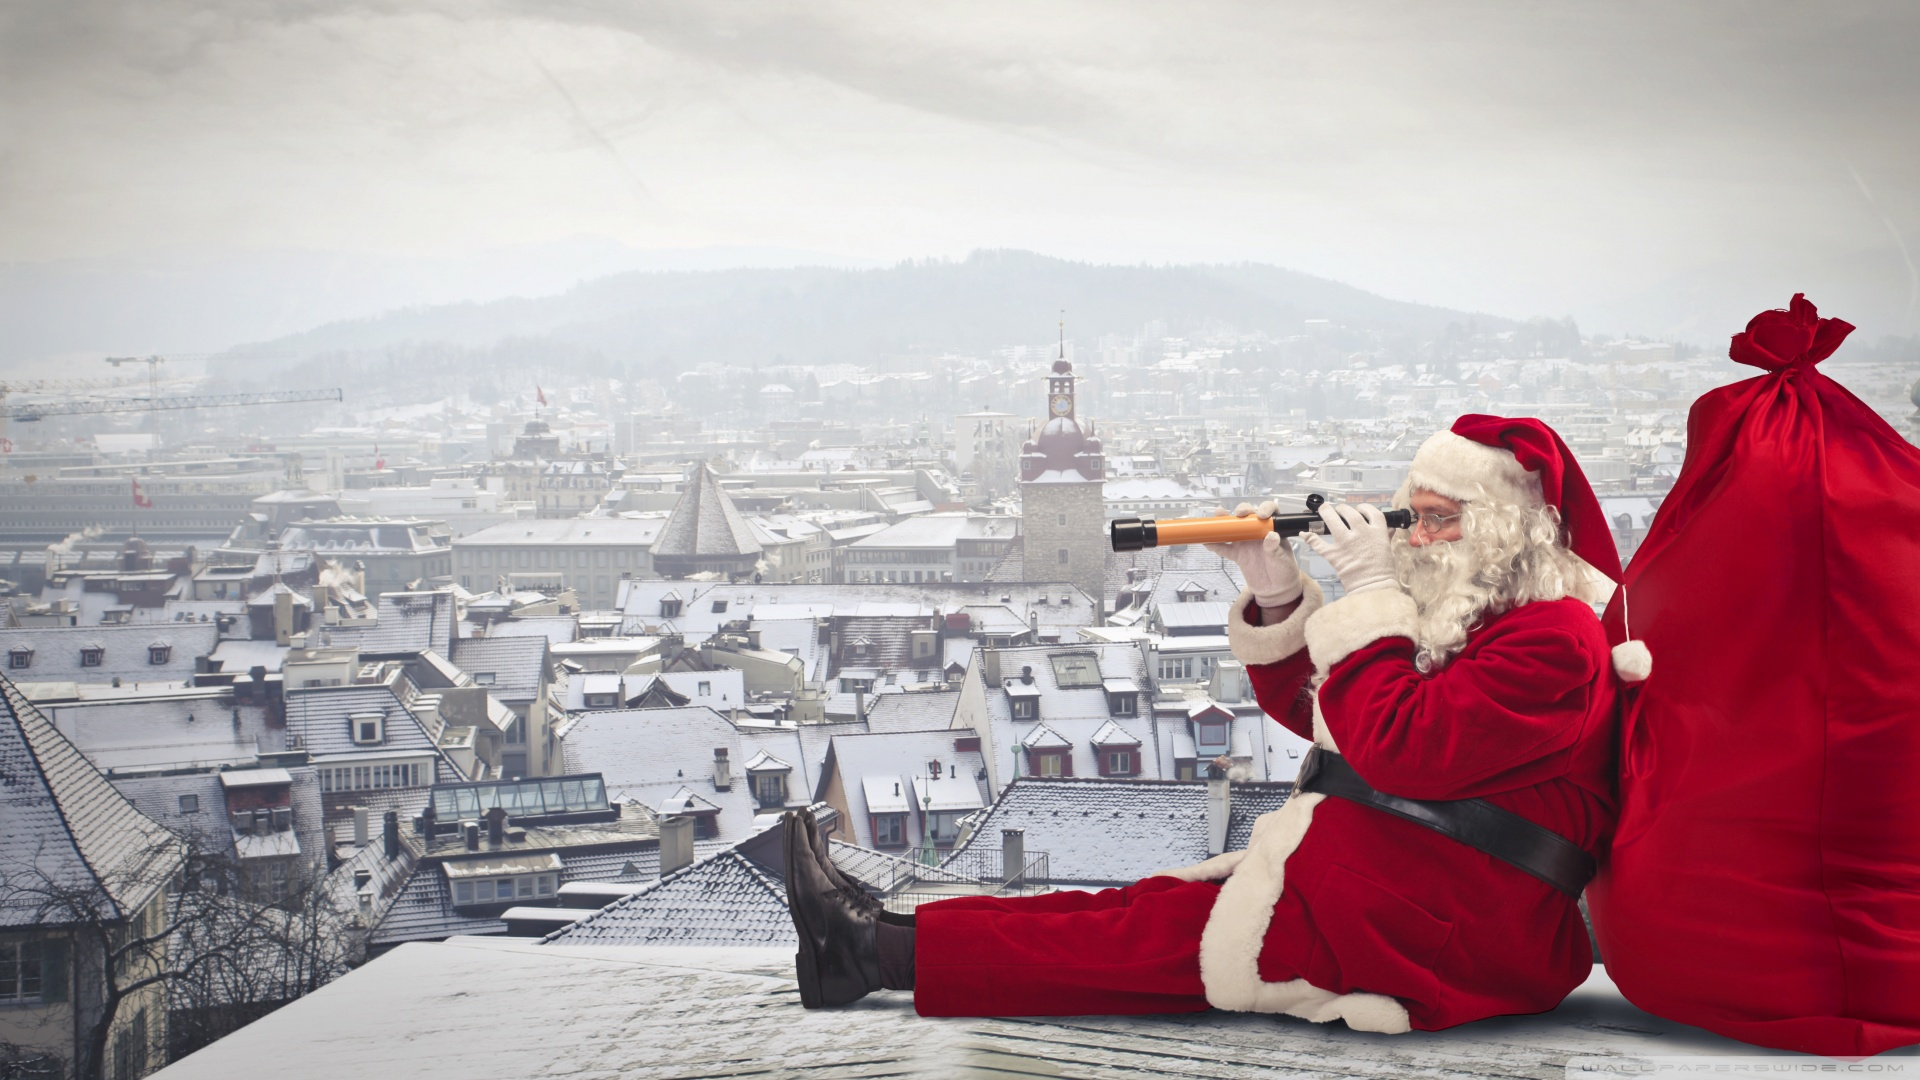 santa_claus_is_coming-wallpaper-1920x1080